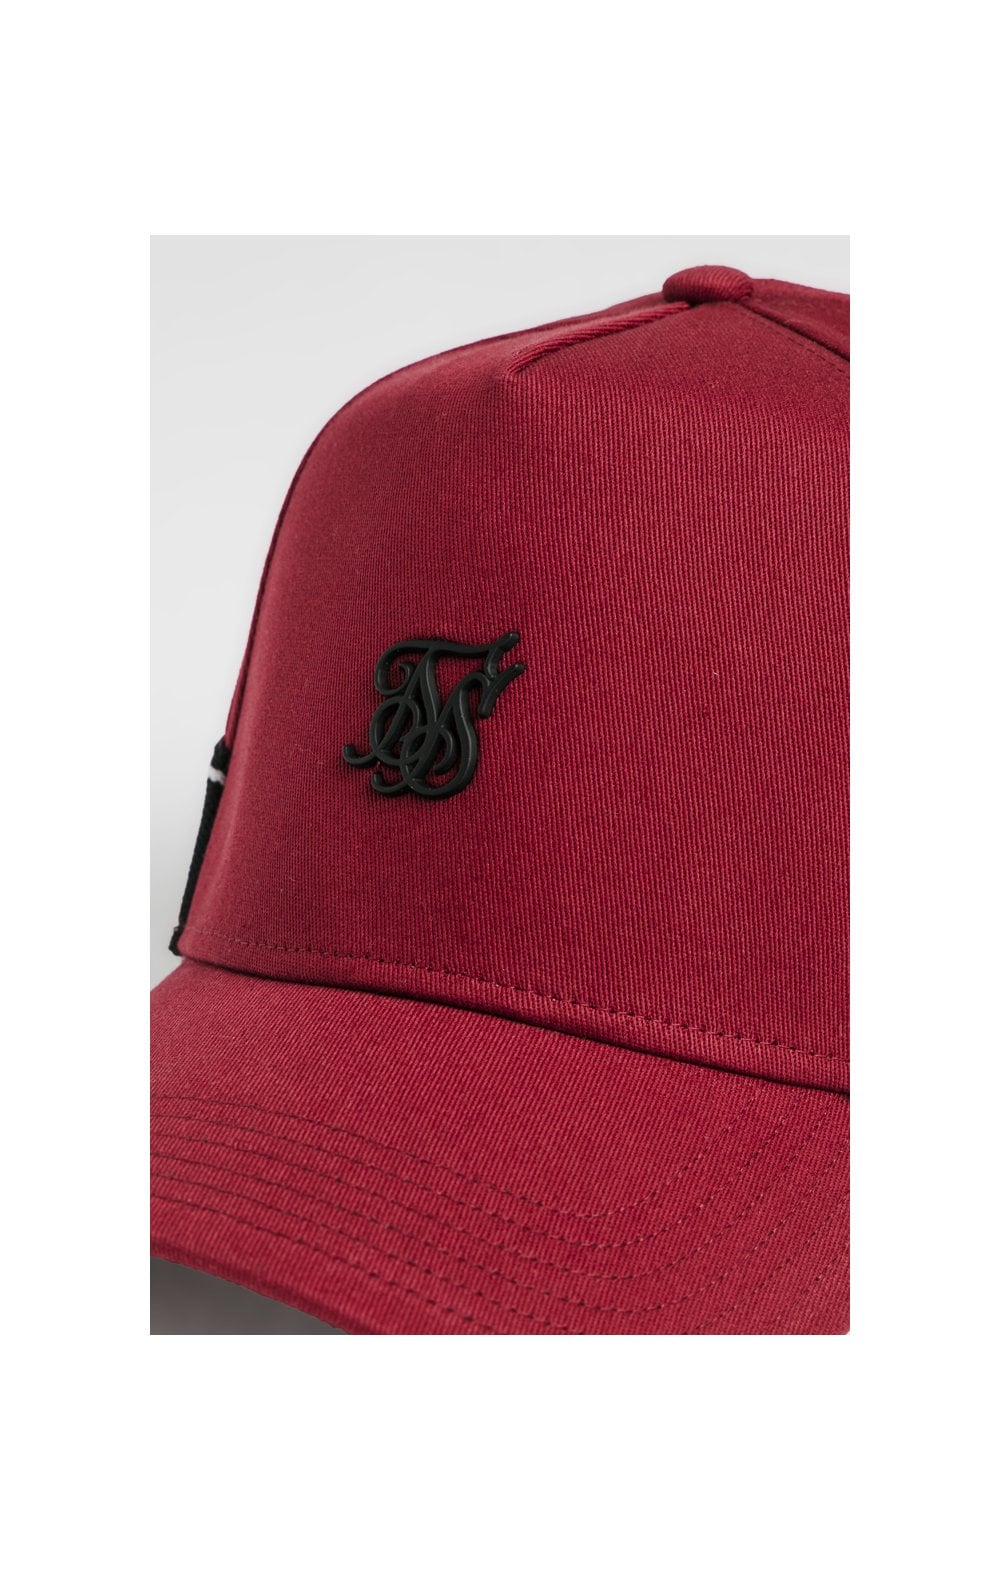 SikSilk Stretch Fit Full Trucker - Red (1)